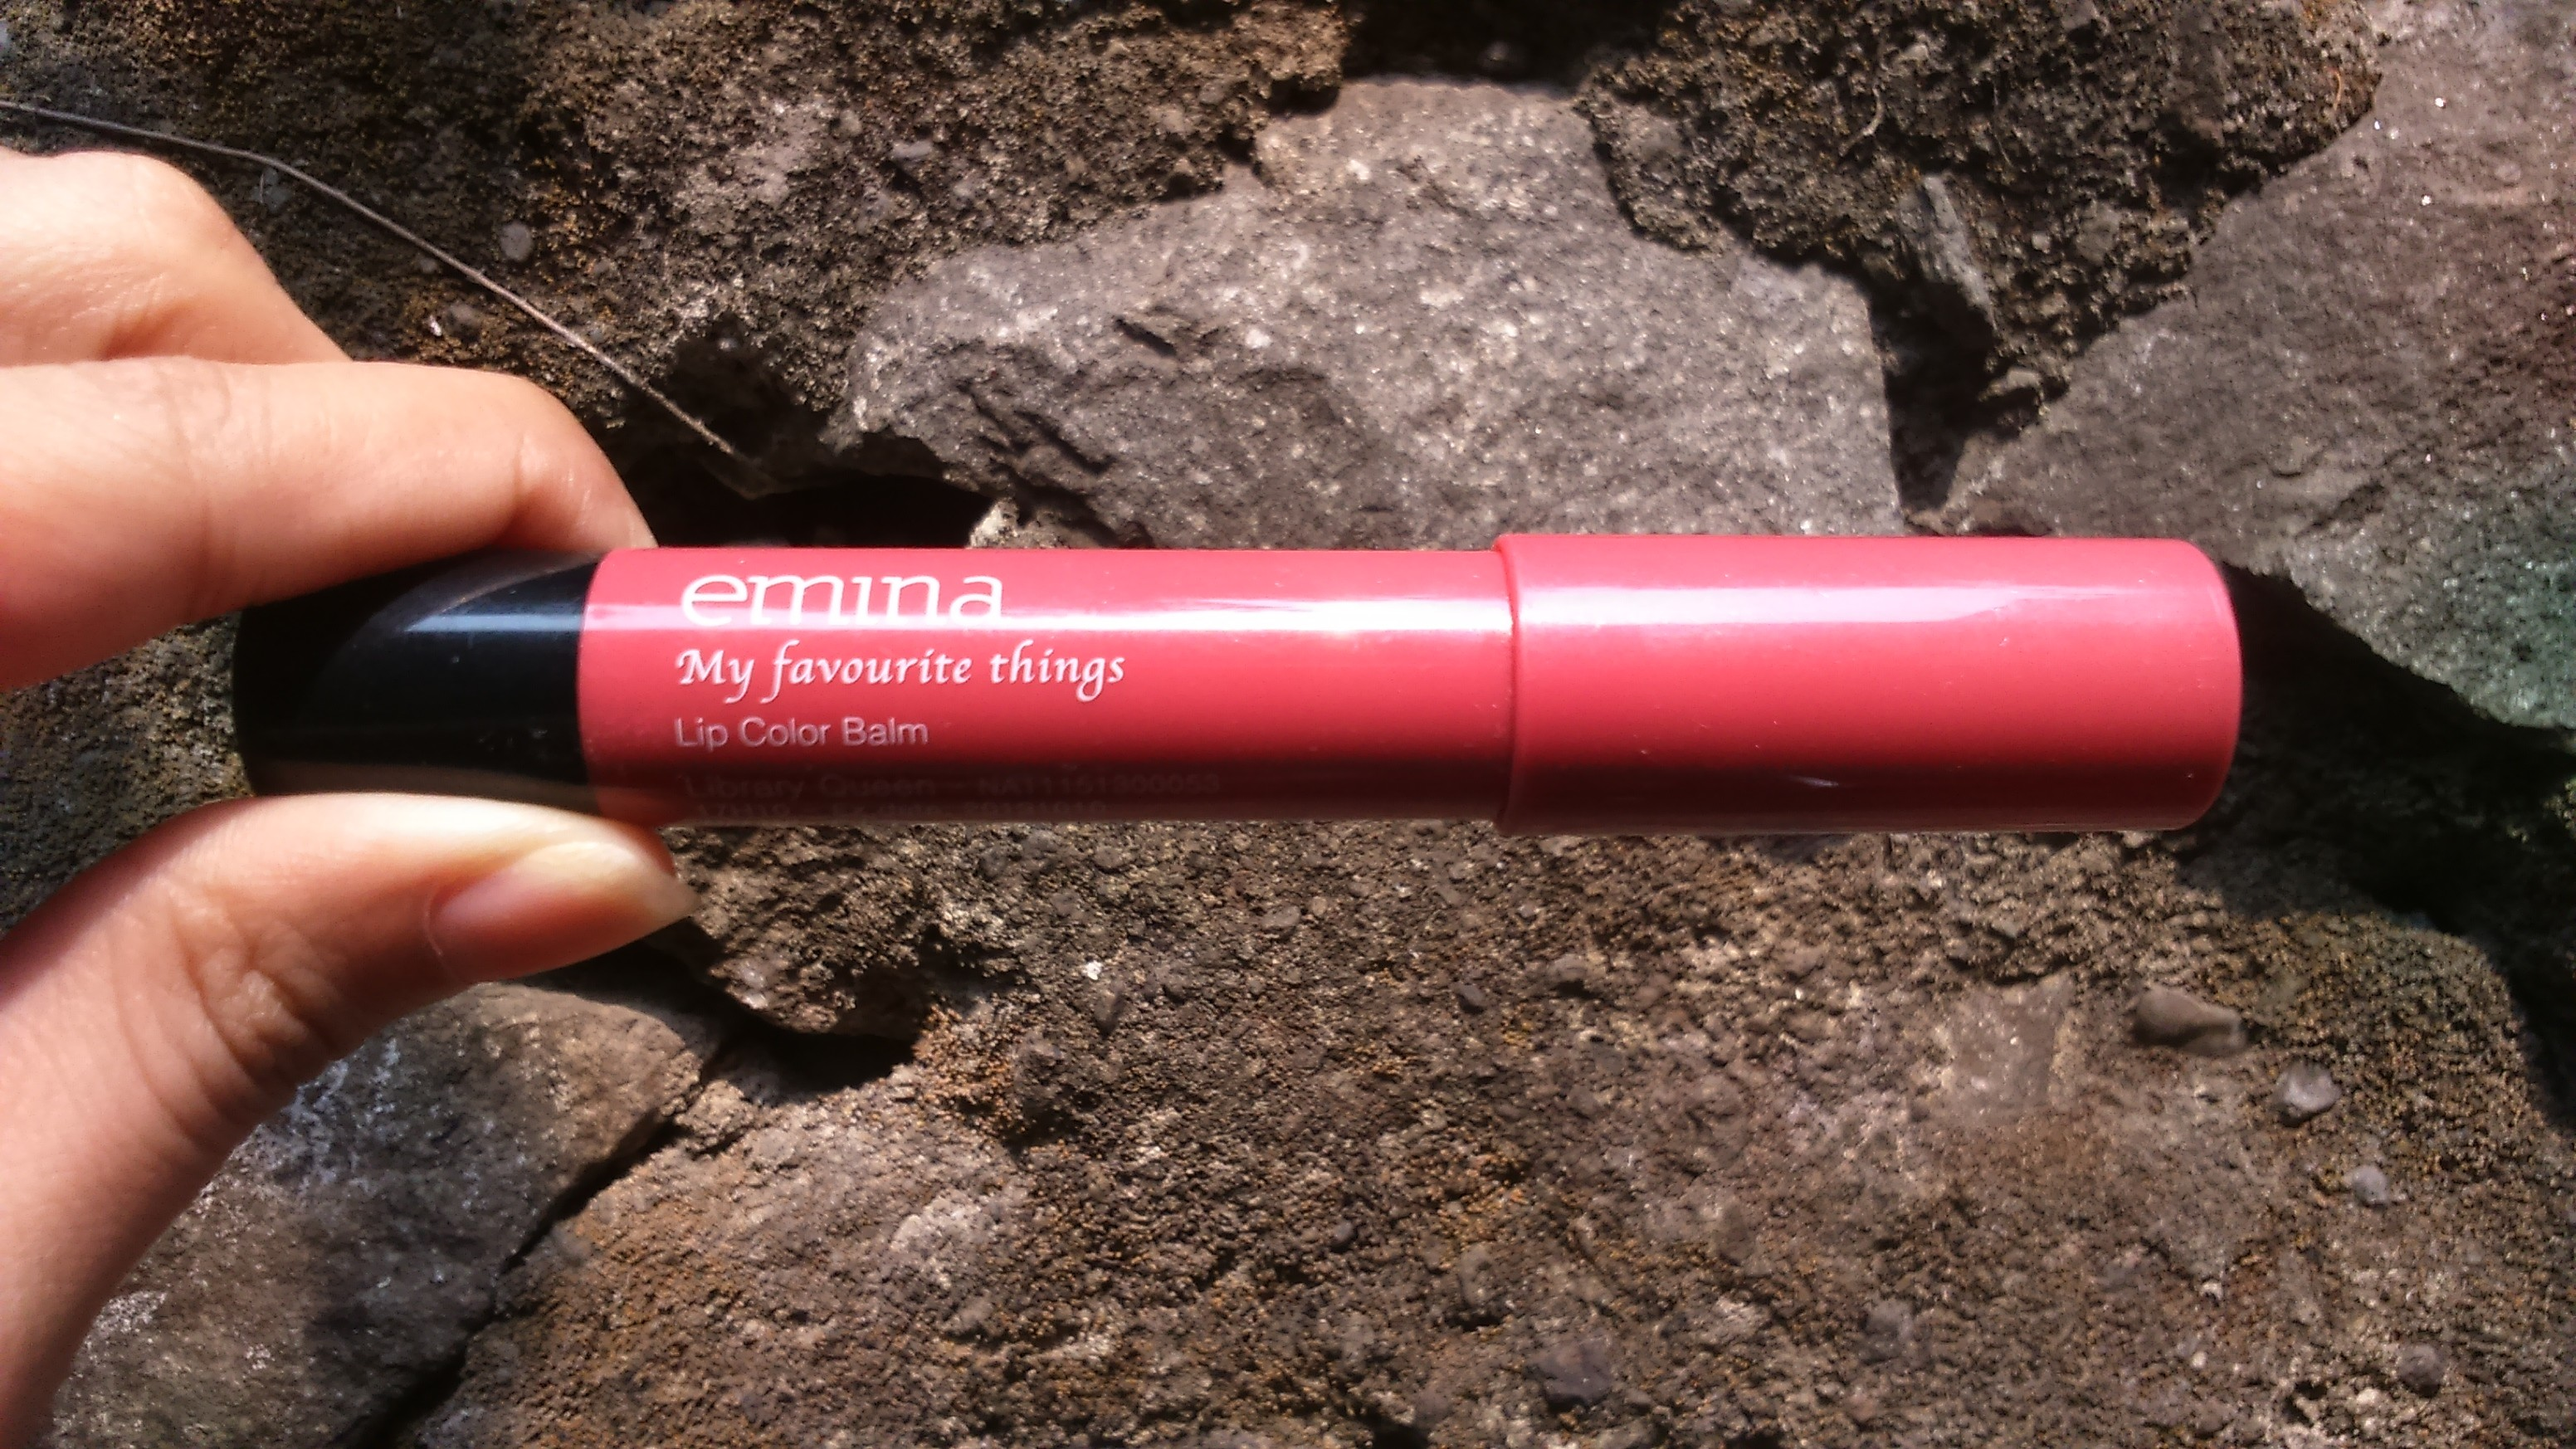 Review Emina My Favourite Things Lip Color Balm Beauty Journal By Quina Maskara Hitam Mkp00006 05 November 2018